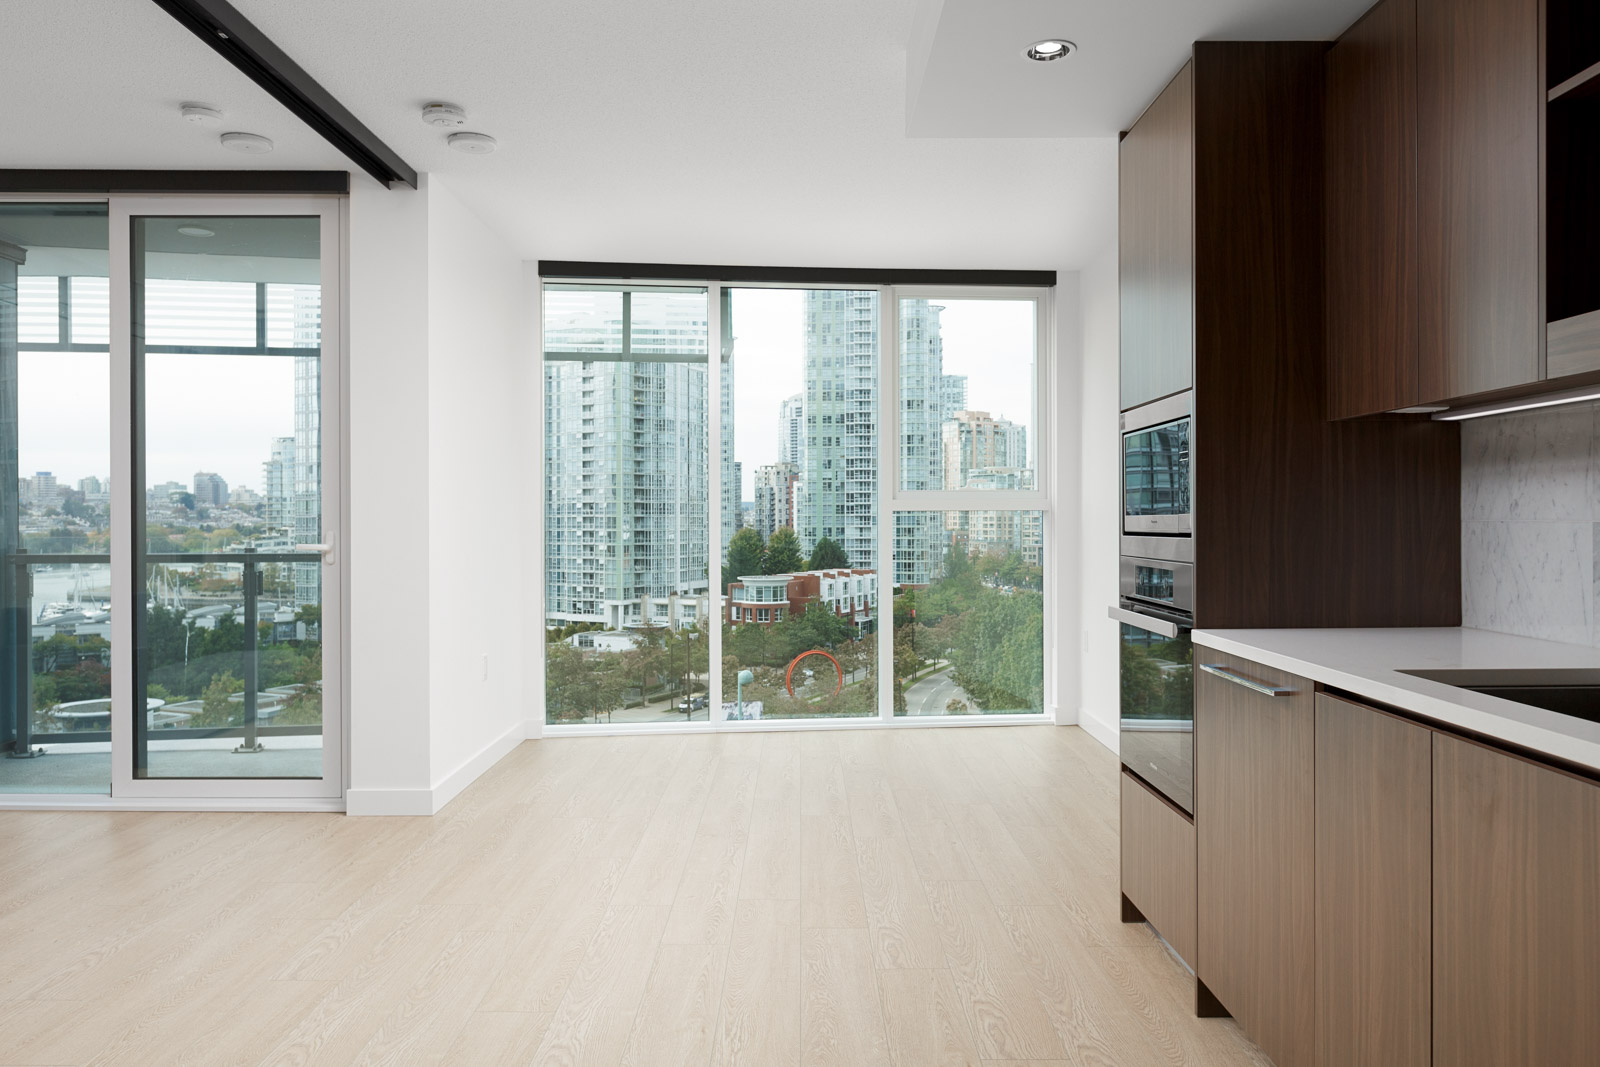 floor to ceiling window in living room of rental condo with kitchen on right